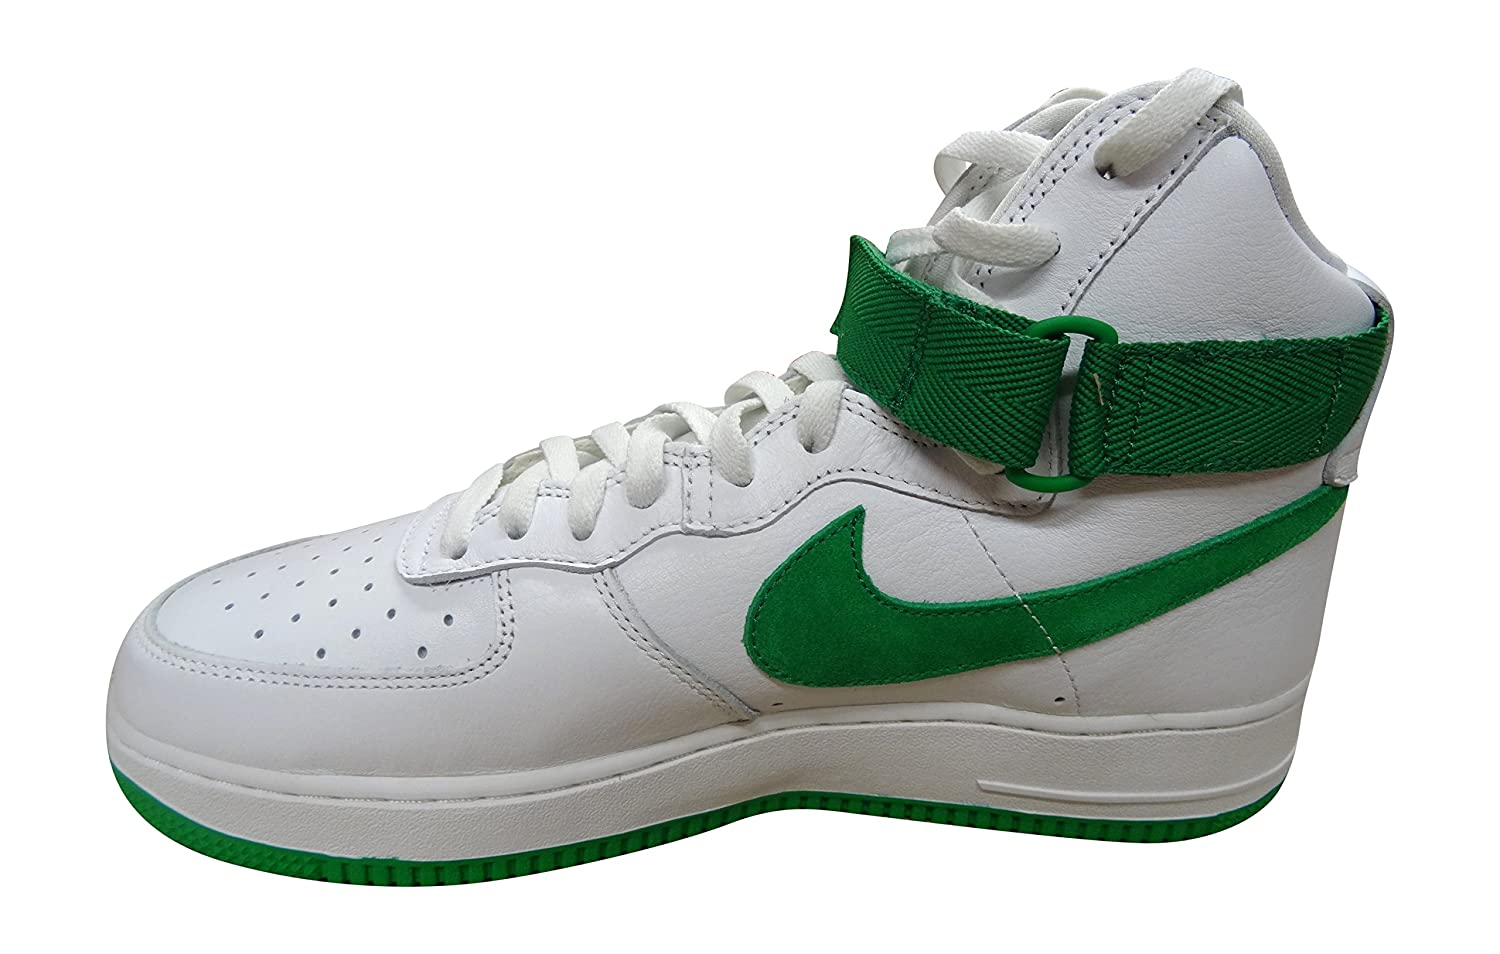 c7d8e5fd1ca9 nike air force 1 HI retro QS mens hi top trainers 743546 sneakers shoes (uk  6 us 7 eu 40